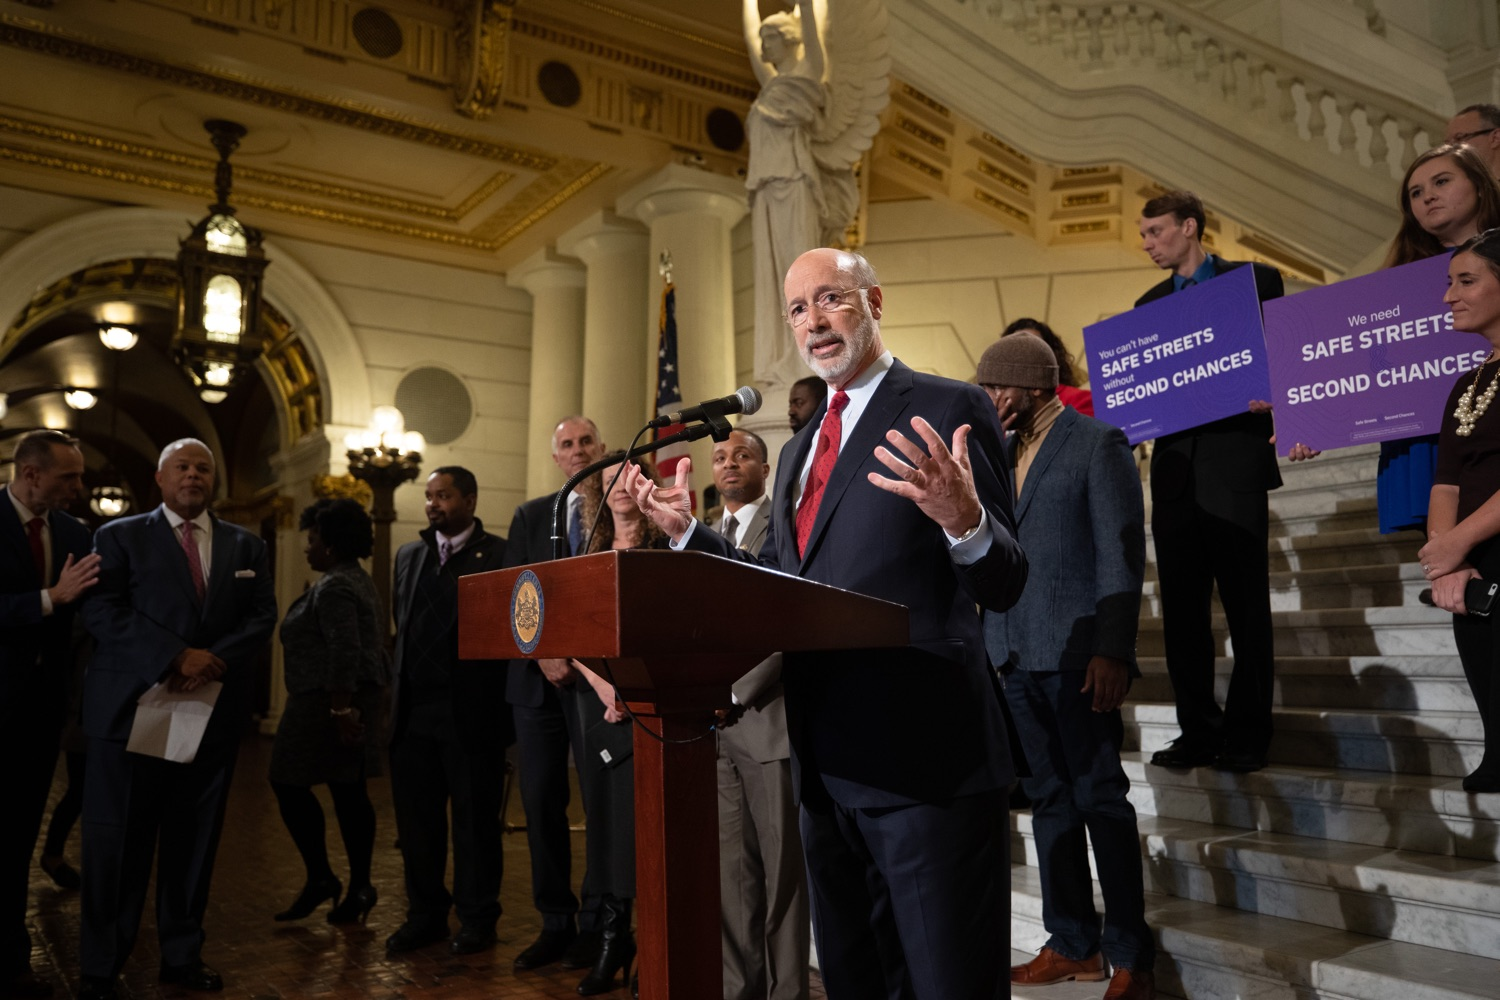 """<a href=""""http://filesource.abacast.com/commonwealthofpa/photo/17601_gov_right_on_crime_dz_002.jpg"""" target=""""_blank"""">⇣Download Photo<br></a>Governor Tom Wolf speaking at the event. Governor Tom Wolf was joined by Deputy Secretary of Corrections Christian Stephens and national criminal justice reform advocates today in the Capitol Rotunda to push for commonsense probation reforms that address probation sentences and probation lengths.  Harrisburg, PA  November 18, 2019"""